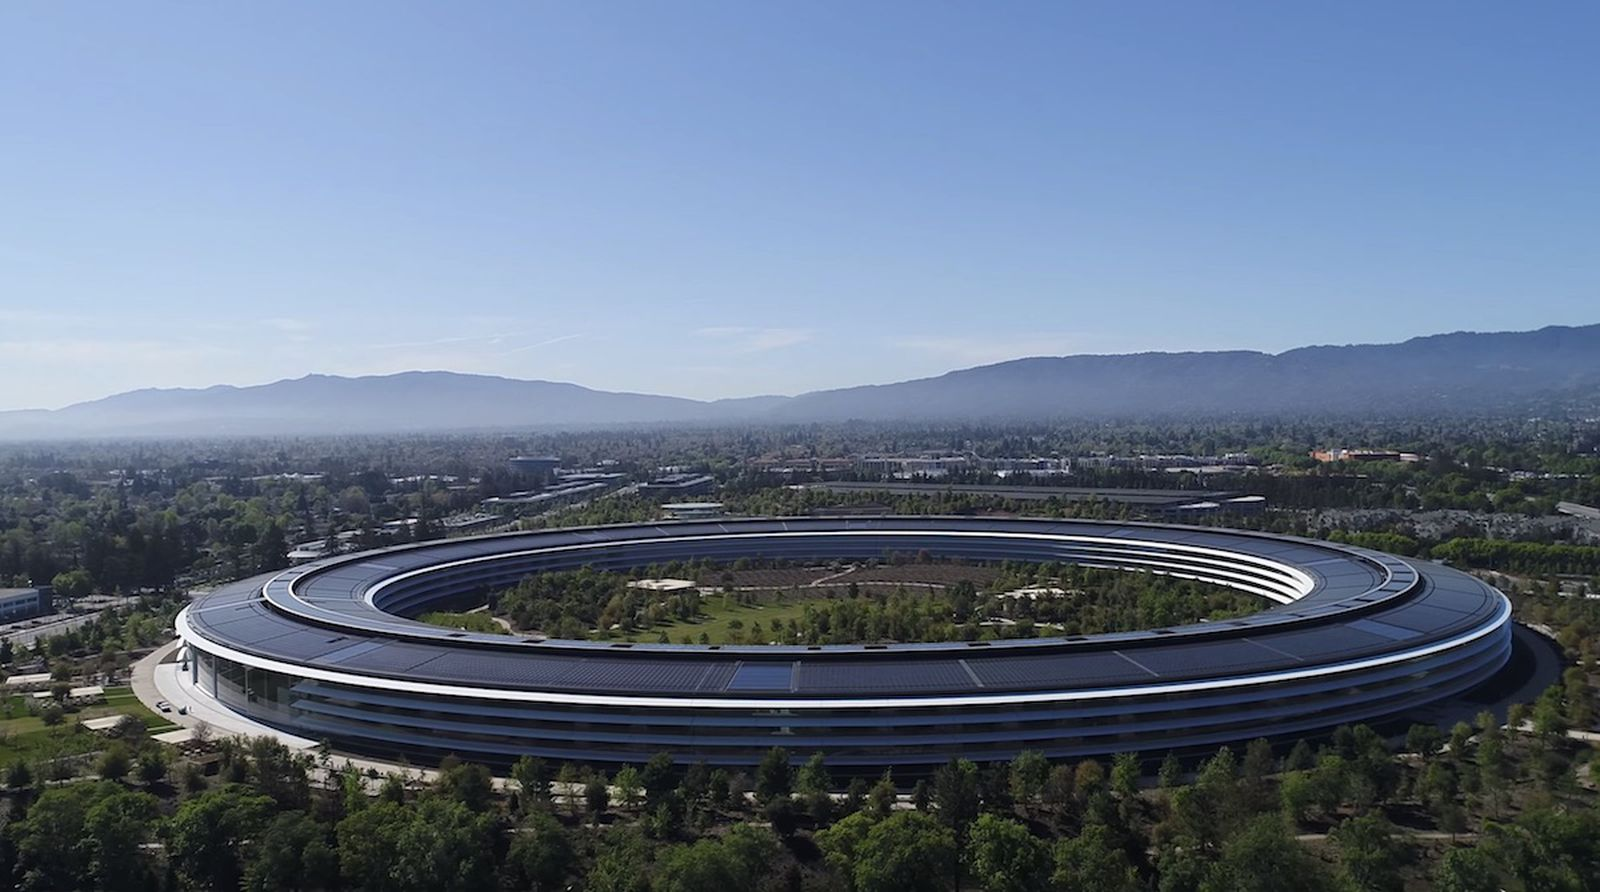 Apple Publishes Human Rights Policy Following Shareholder Pressure Over China Censorship